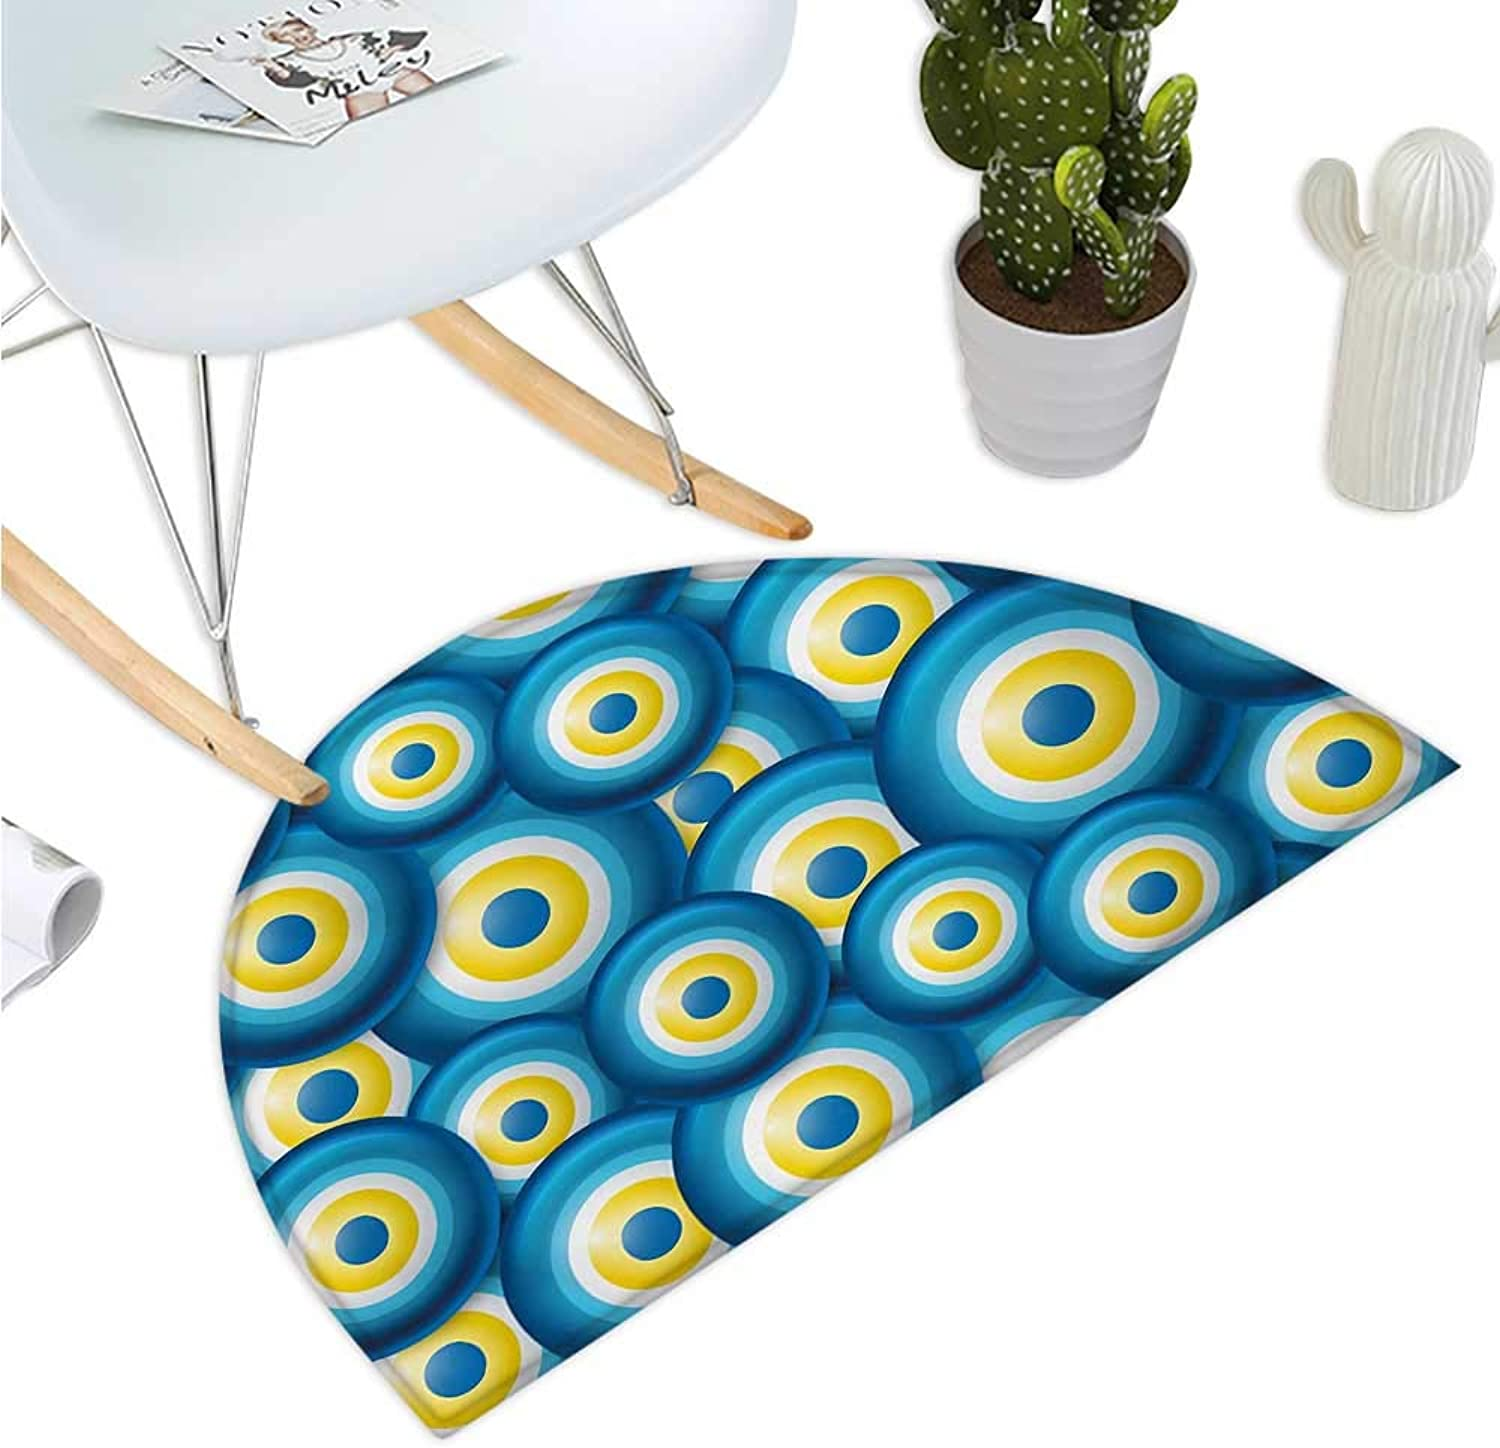 Evil Eye Semicircular Cushion Overlapping Evil Eye Figures Cultural Ethnicity Turkish Positive Lucky Sign Bathroom Mat H 35.4  xD 53.1  bluee White Yellow